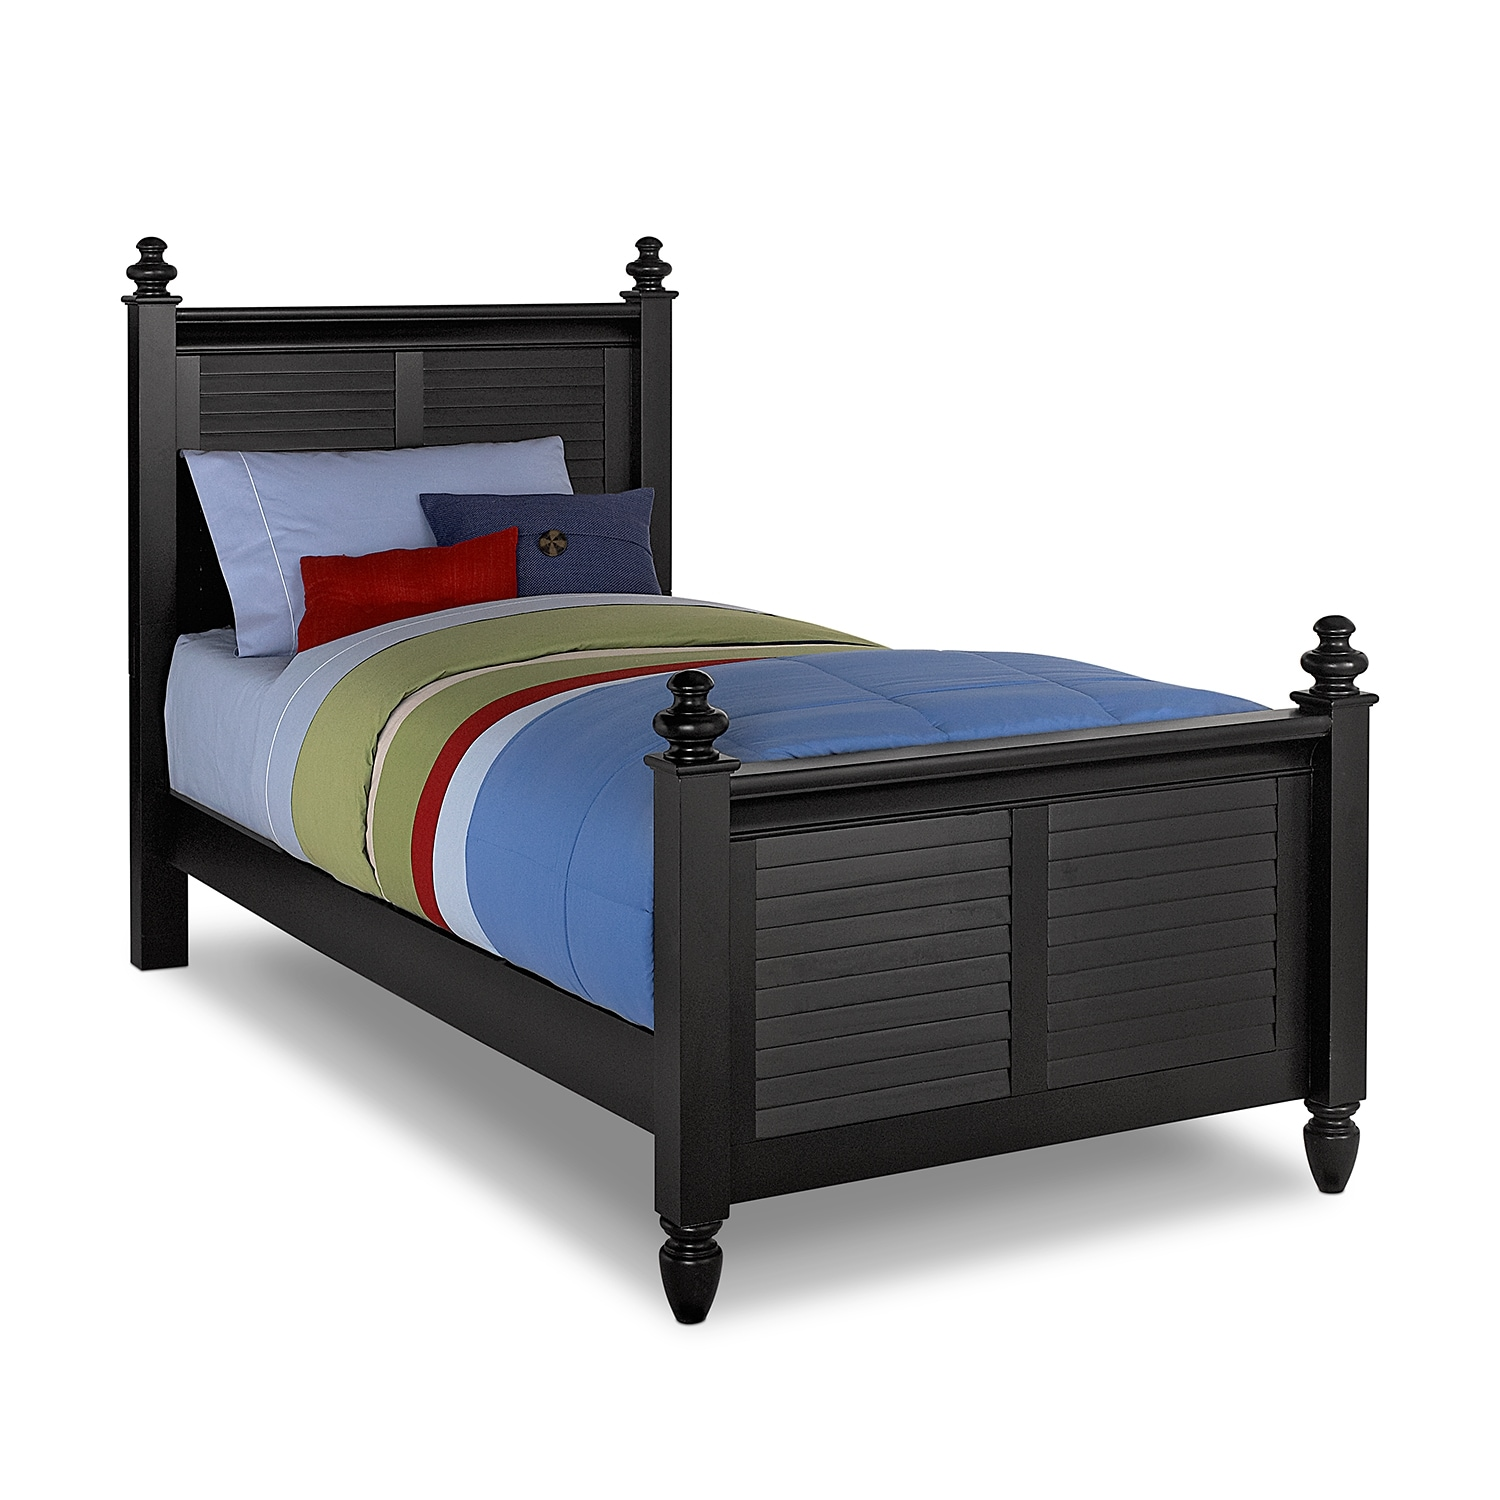 Seaside twin bed black american signature furniture Twin bed frames